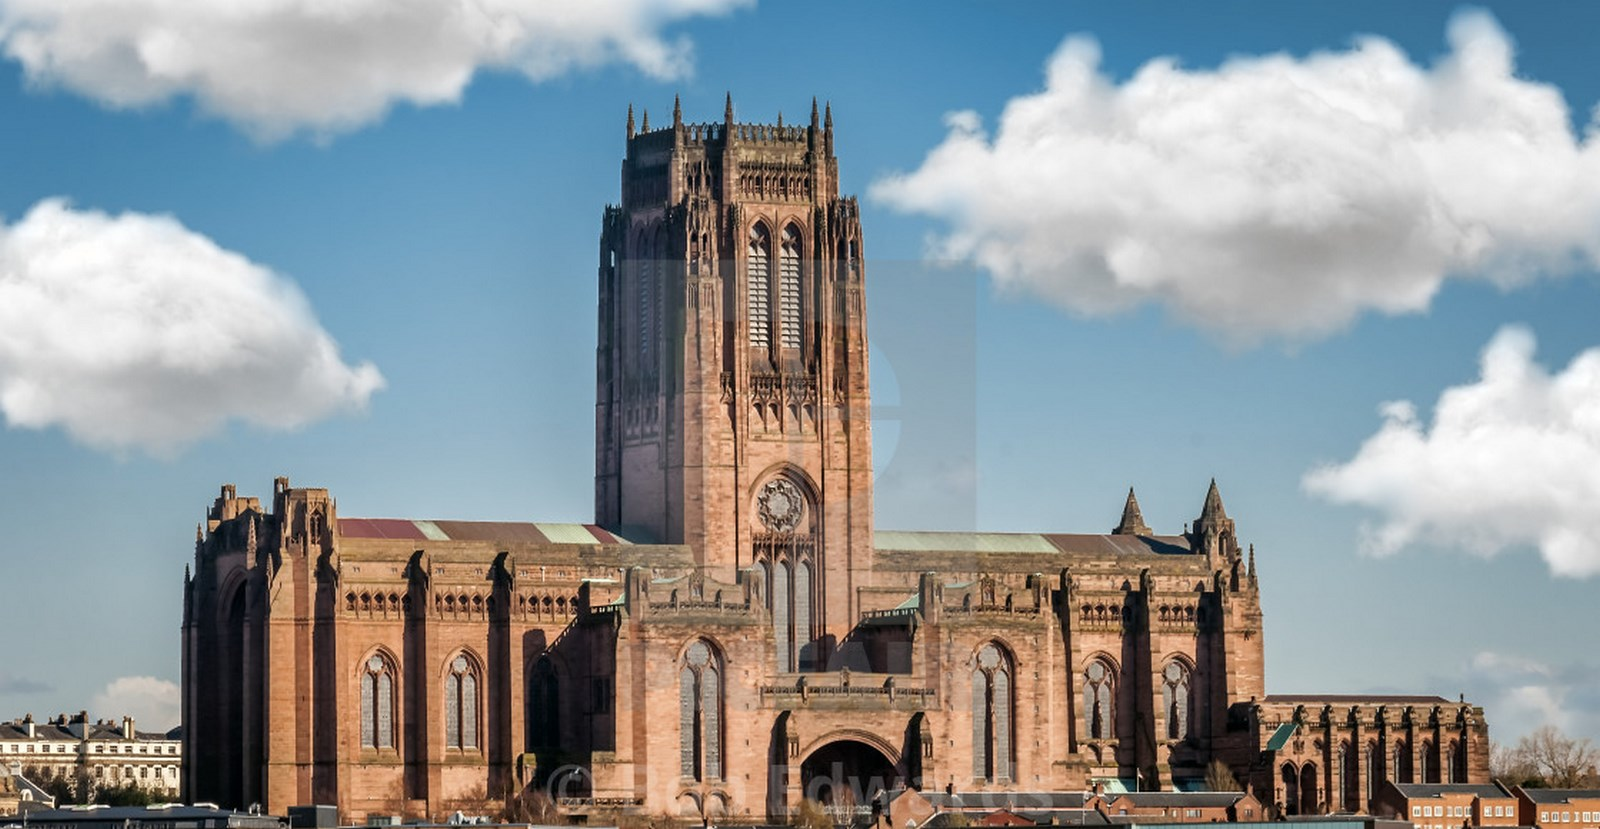 30 Structures that define Liverpool Architecture - Anglican Cathedral